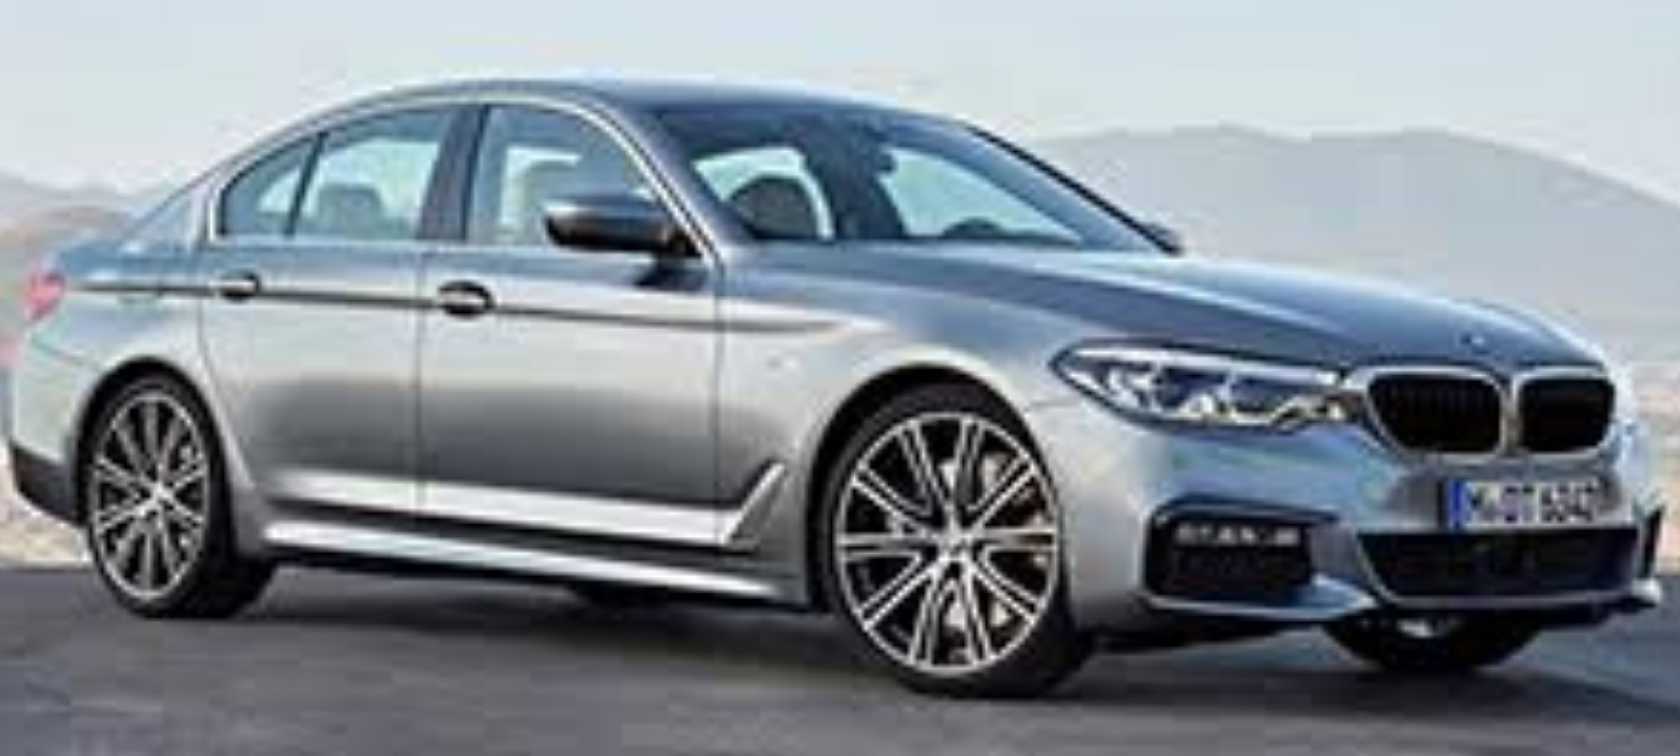 BMW 5 series reviewed by eZhire